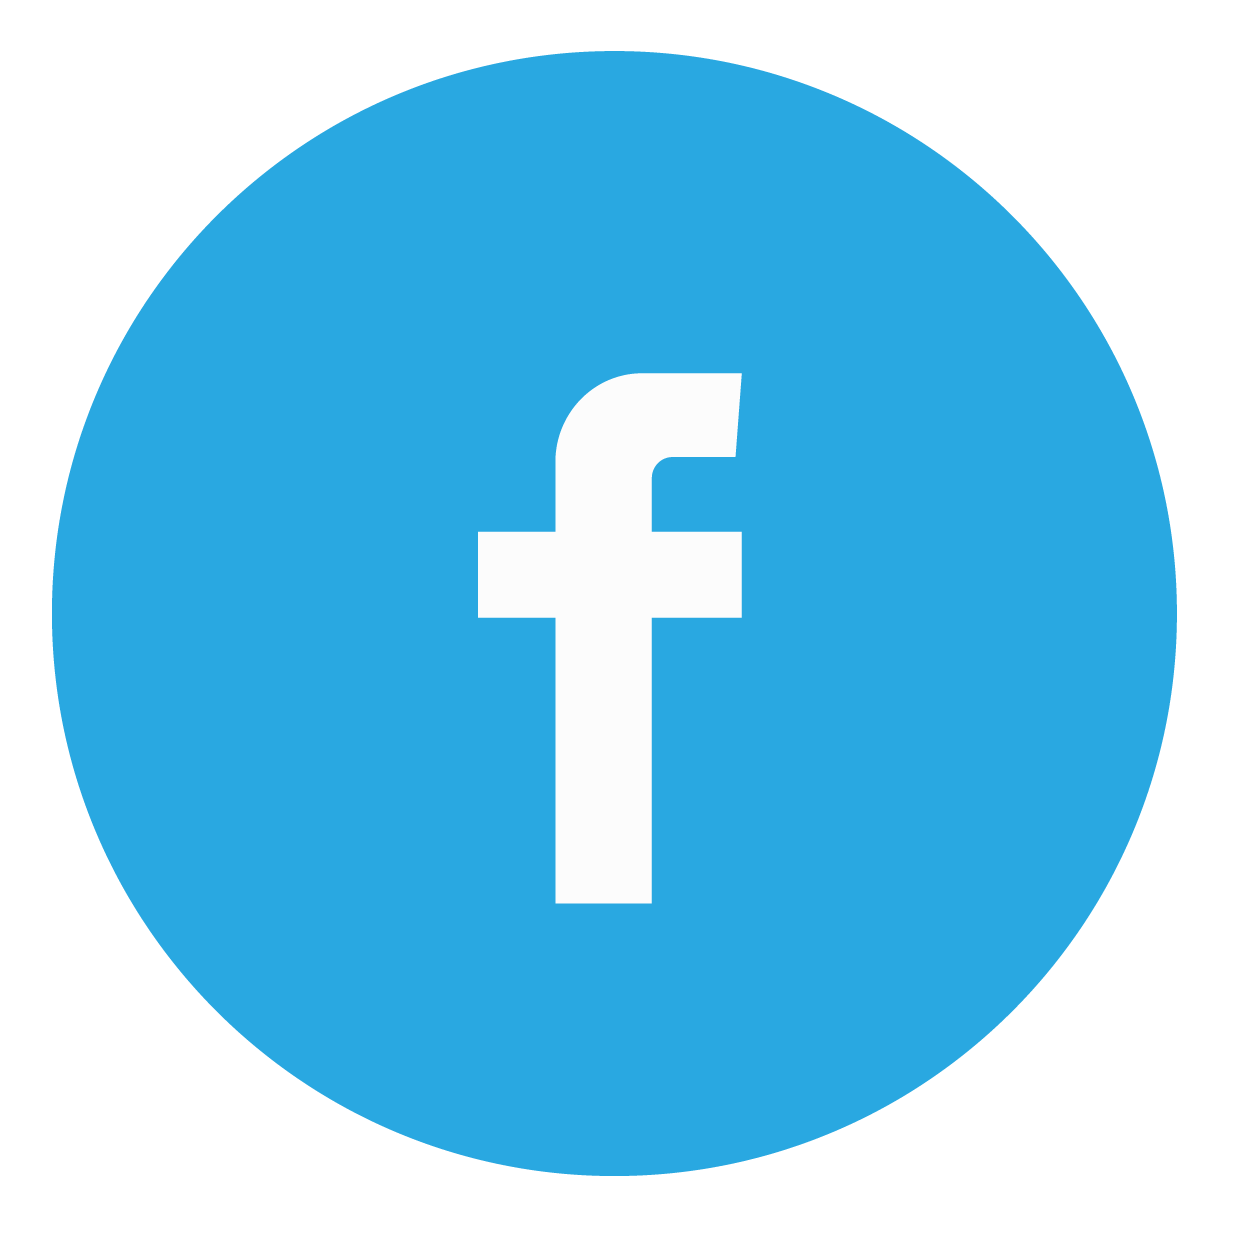 Facebook love icon png. Praisefm connect with